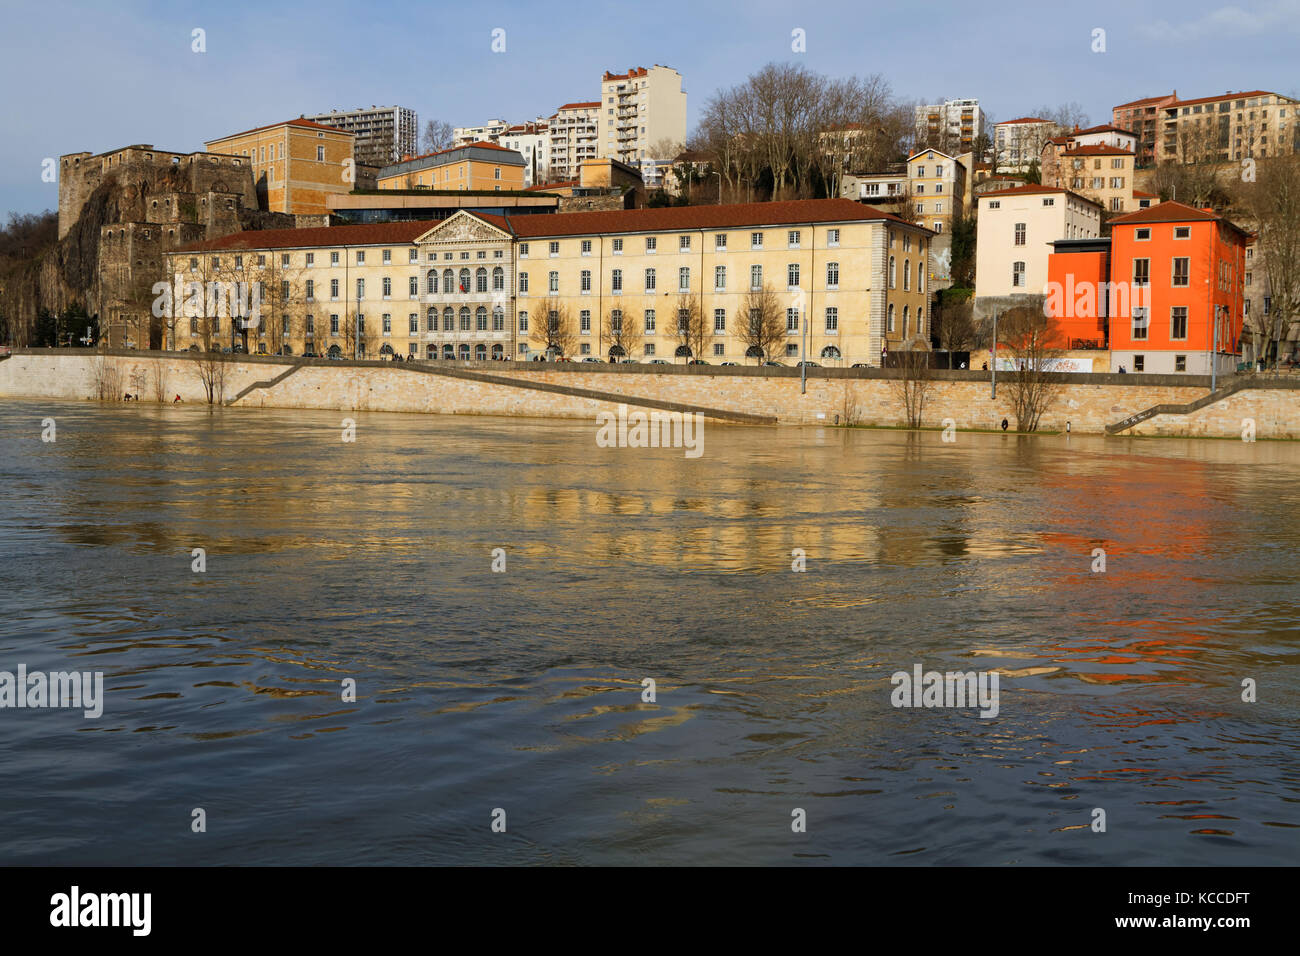 LYON, FRANCE, March 7, 2015 : 'Le grenier d'abondance' (attic of abundance) is ideally placed in the - Stock Image